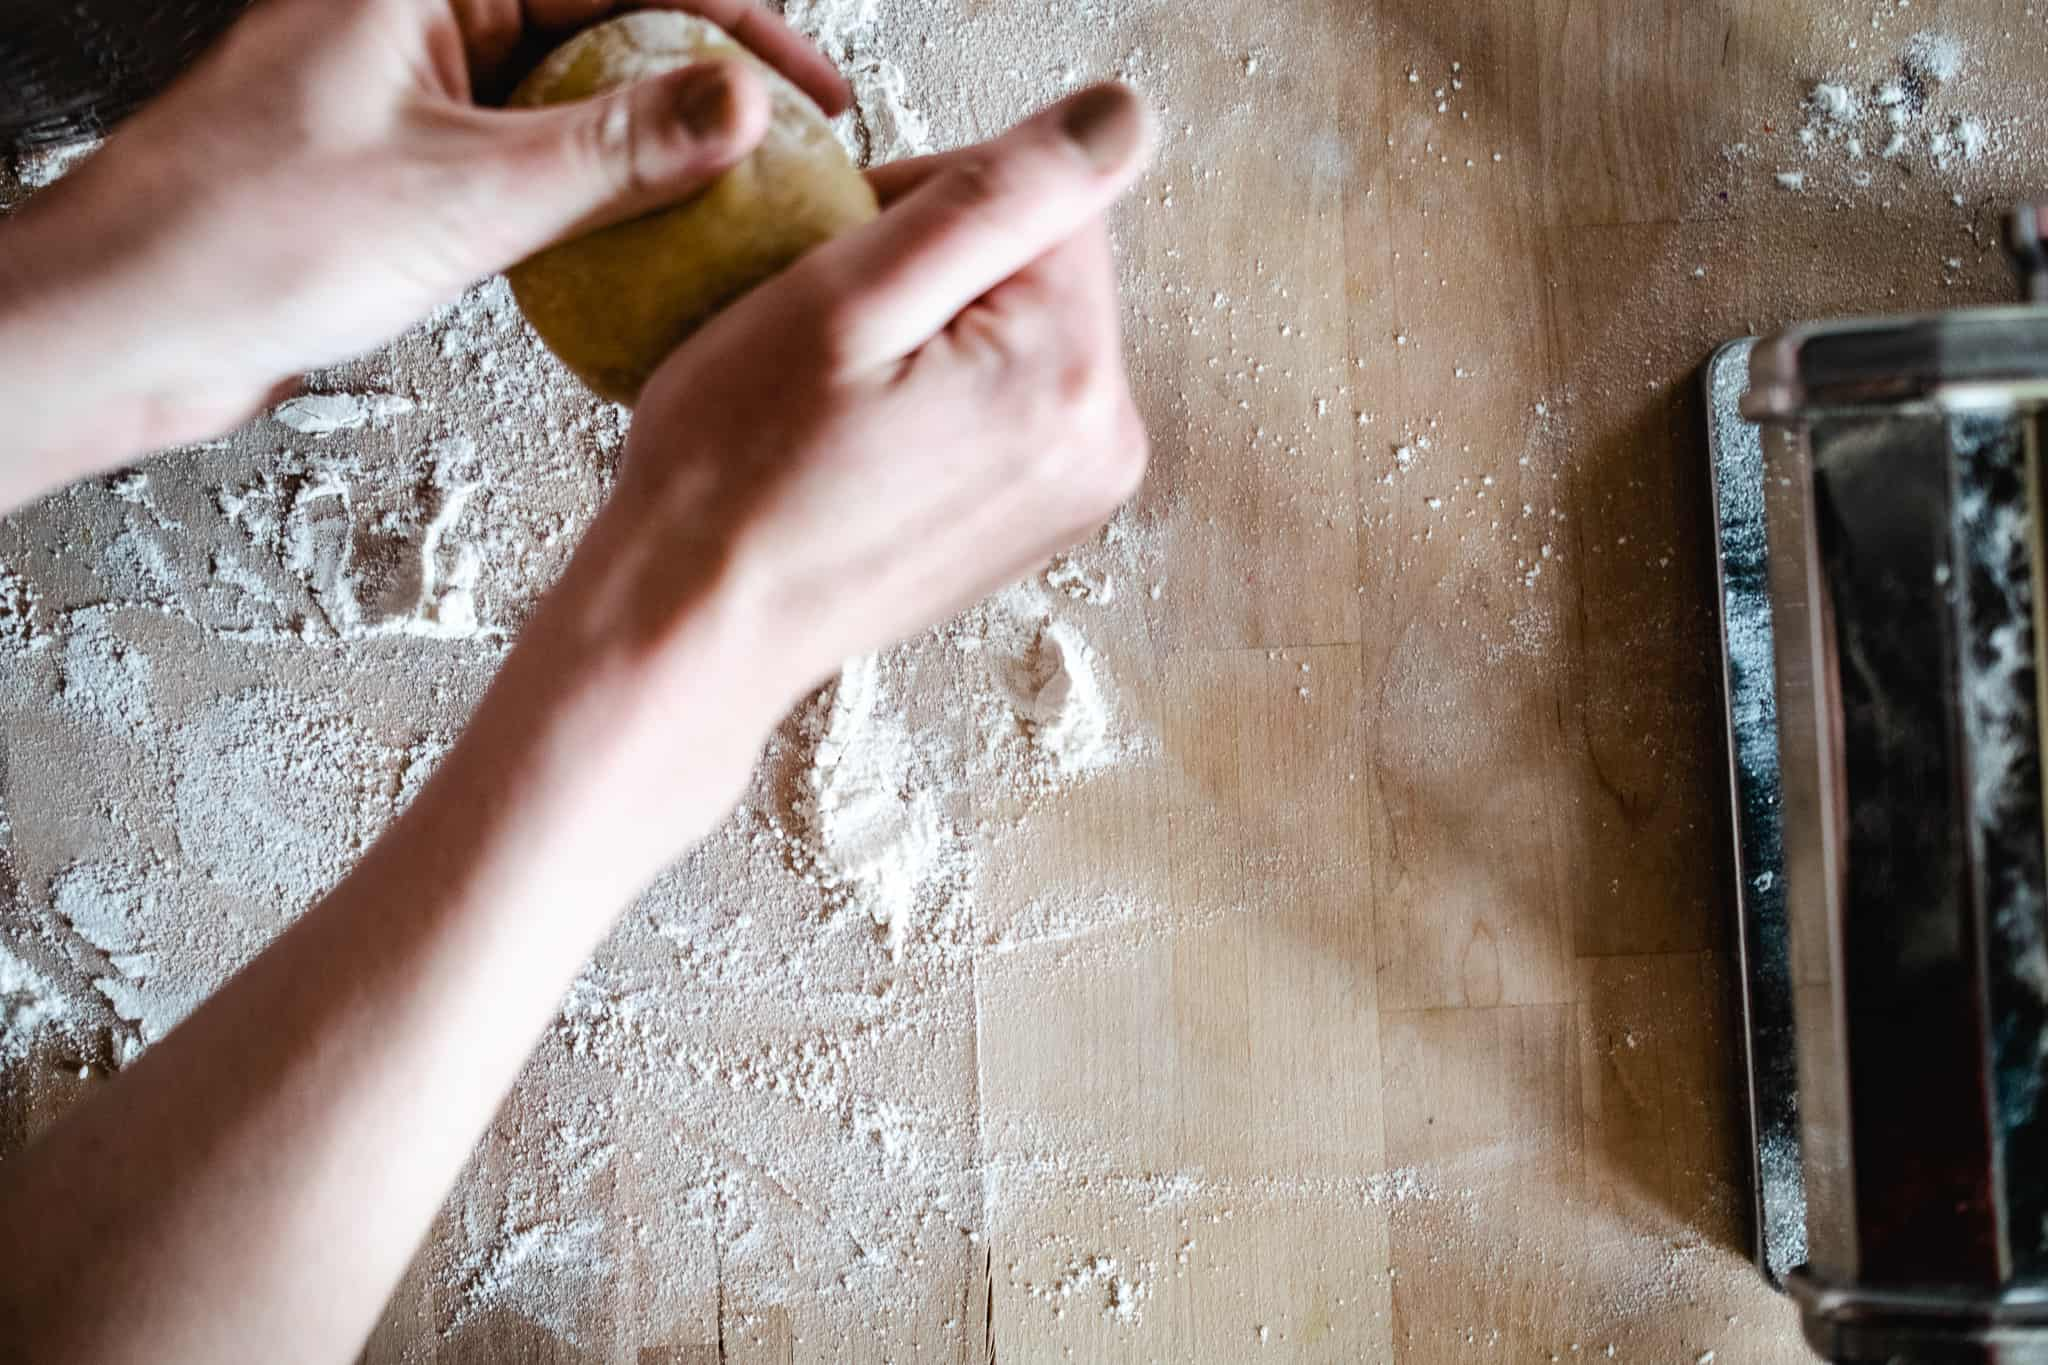 hands forming pasta dough into ball over floured butcher block surface